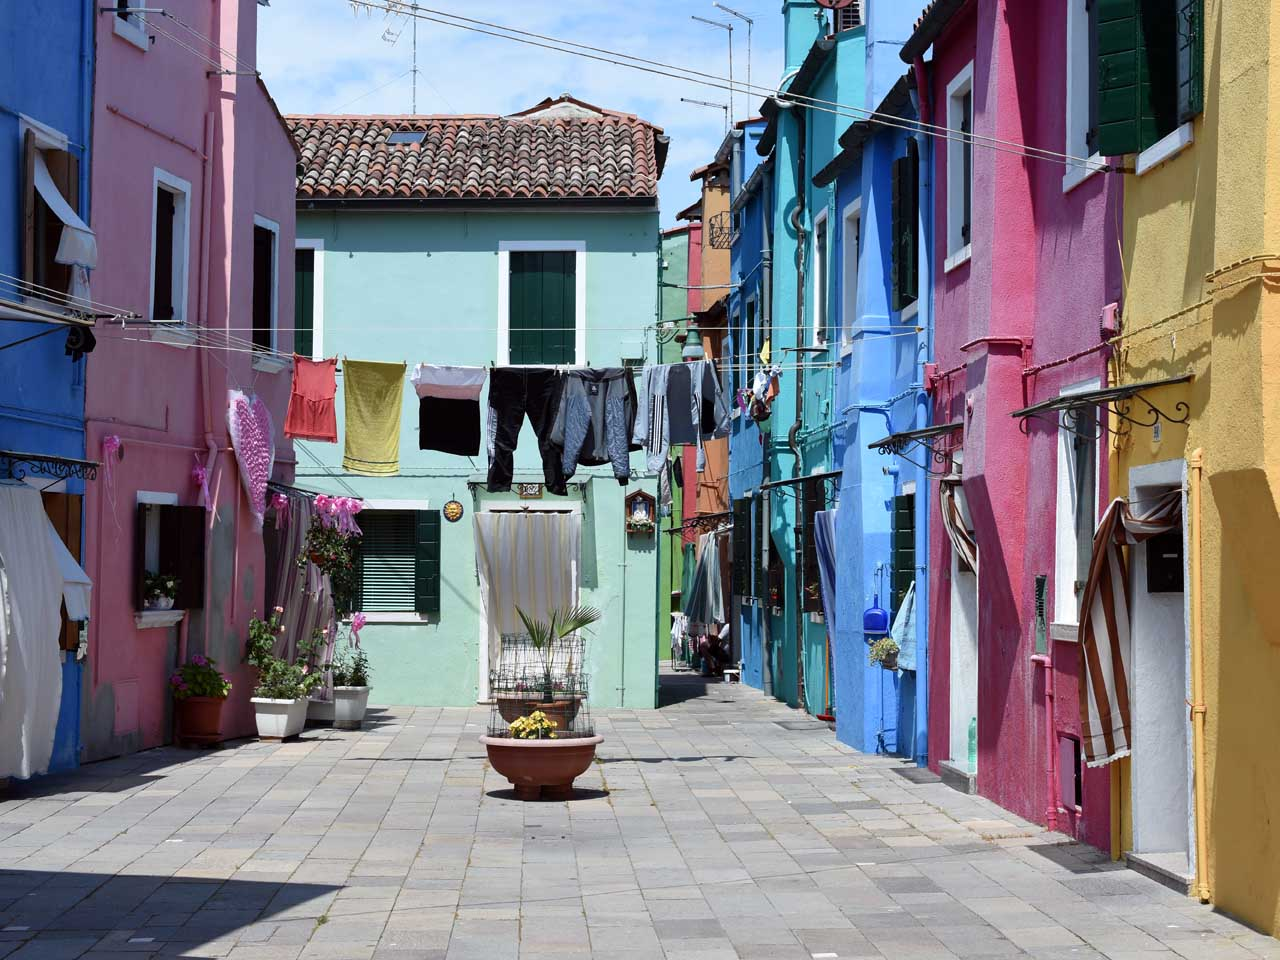 Laundry on the line in Burano